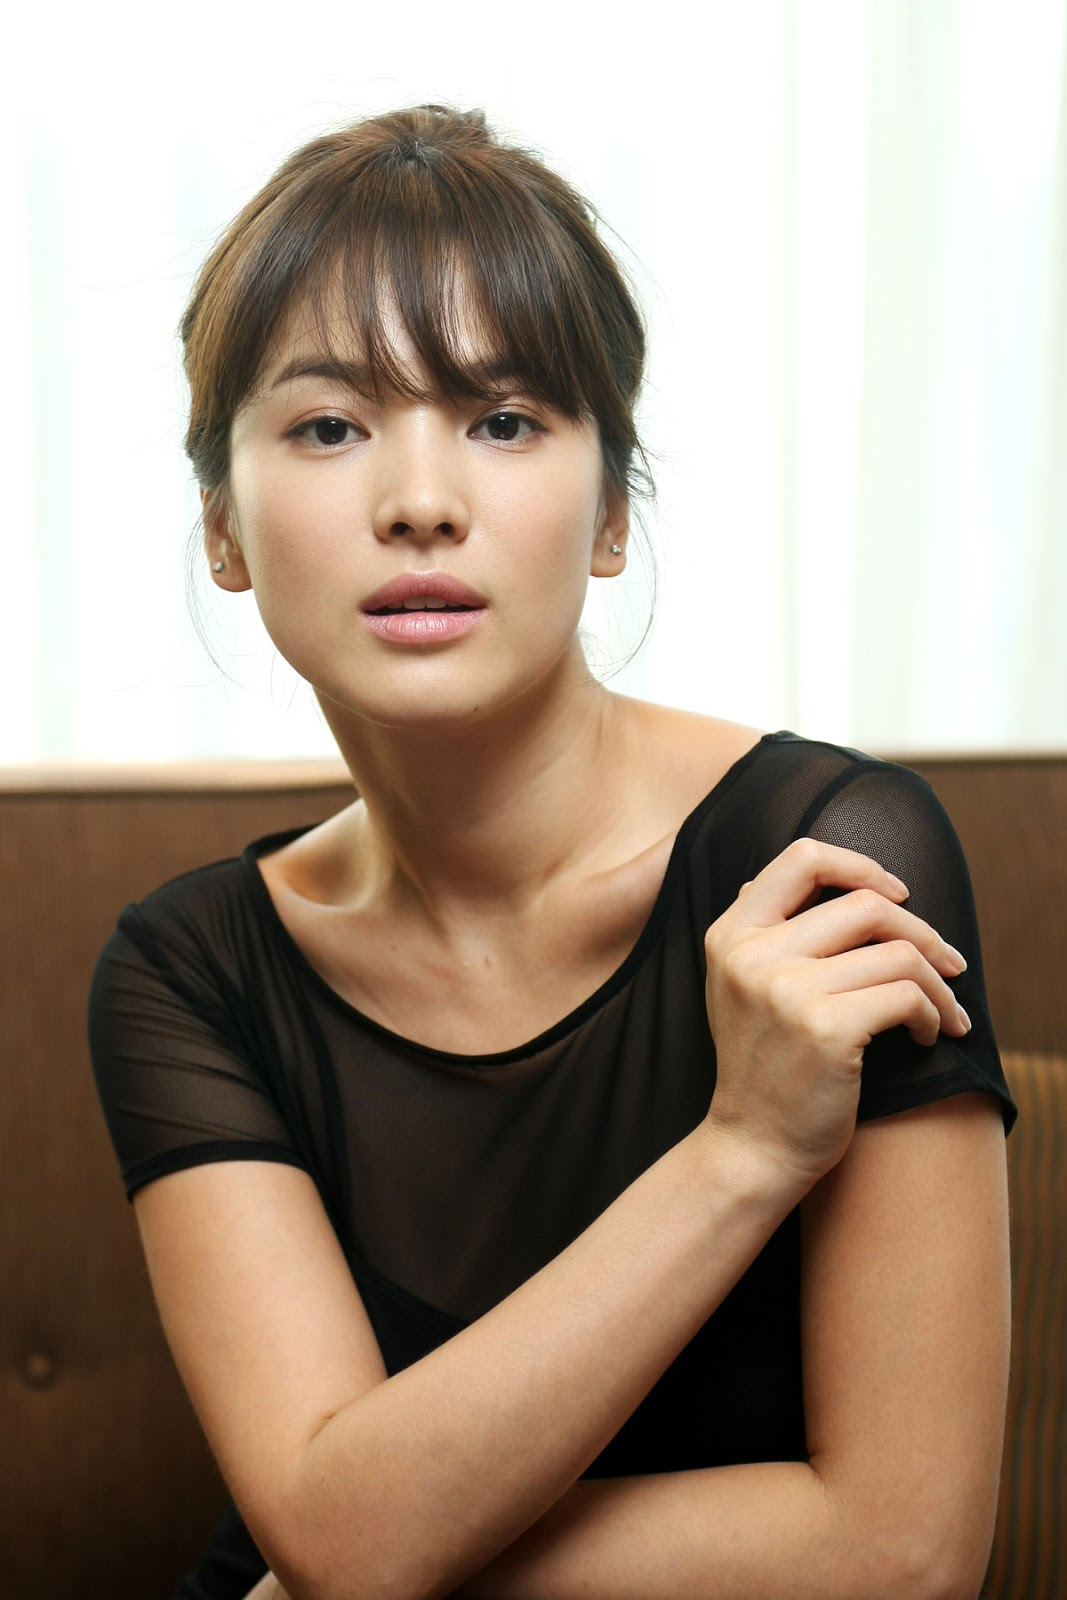 song hye kyo images - photo #36